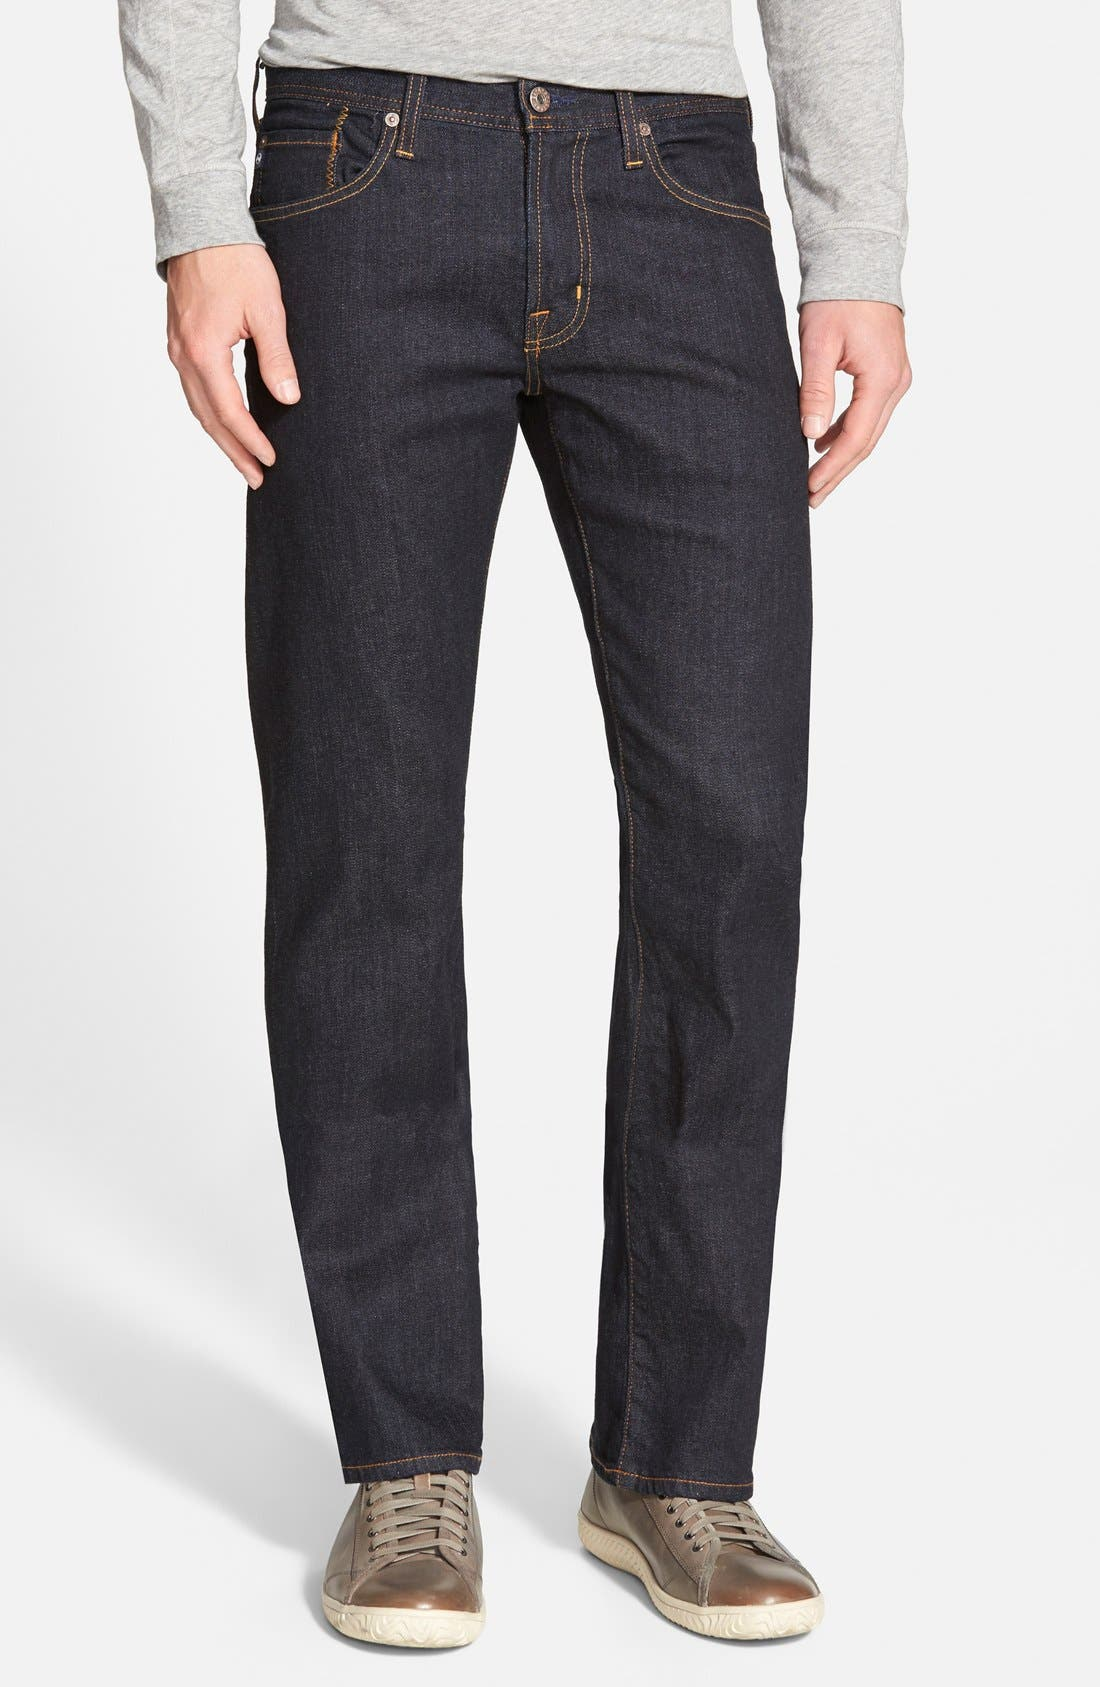 Protégé Straight Leg Jeans,                             Main thumbnail 1, color,                             Jack